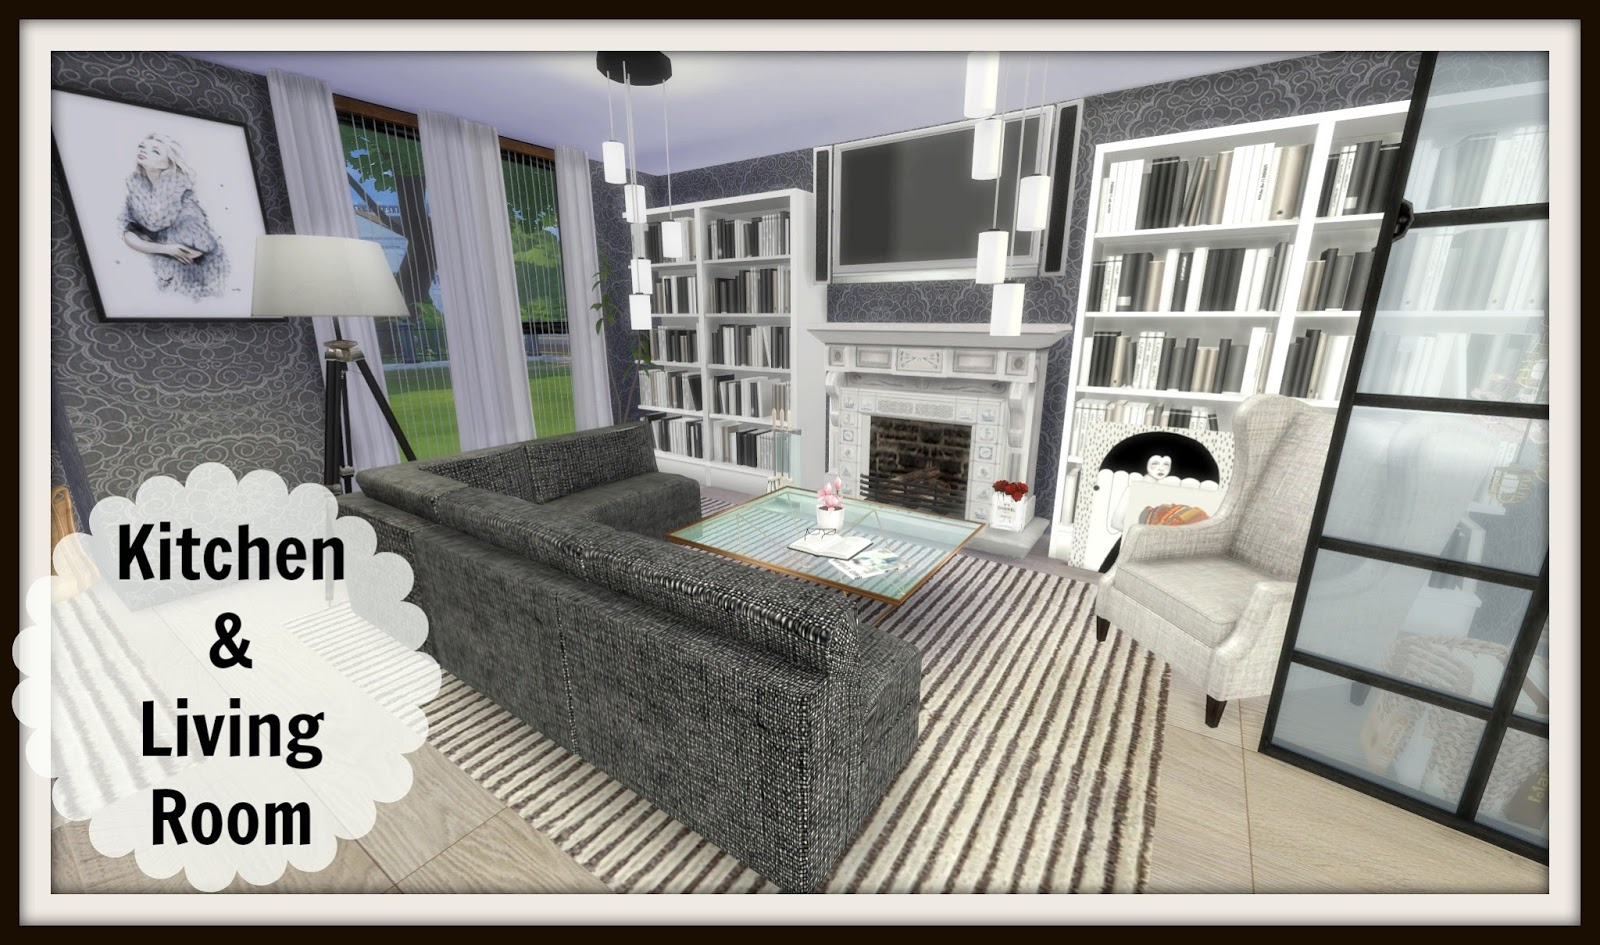 Sims Kitchen Sims 4 Kitchen Living Room Dinha